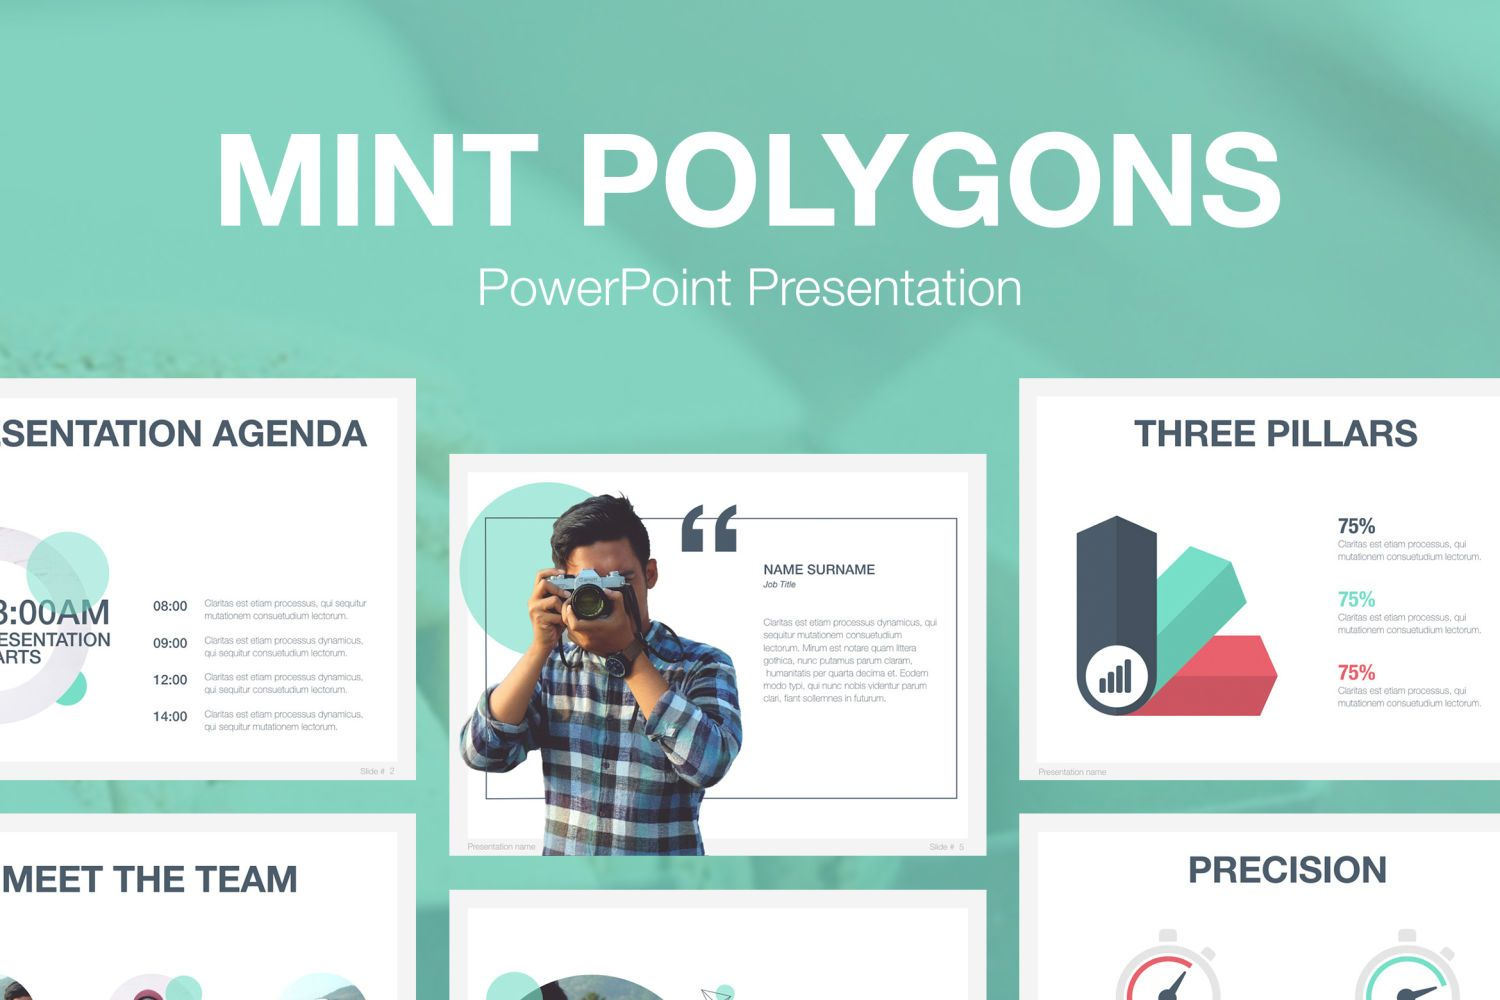 Mint polygons powerpoint template by jumsoft on envato elements mint polygons powerpoint template by jumsoft on envato elements toneelgroepblik Images